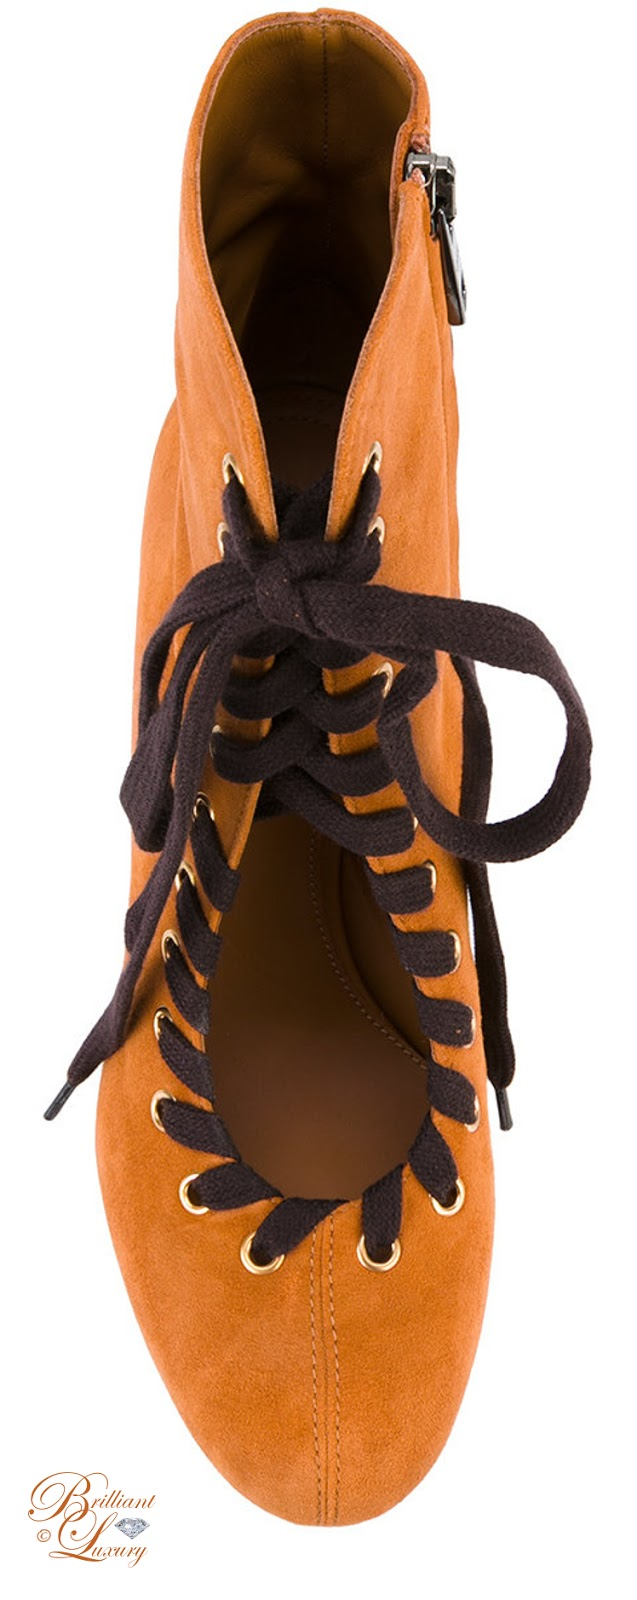 Brilliant Luxury ♦ Chloé Miles Lace Up Ankle Boots